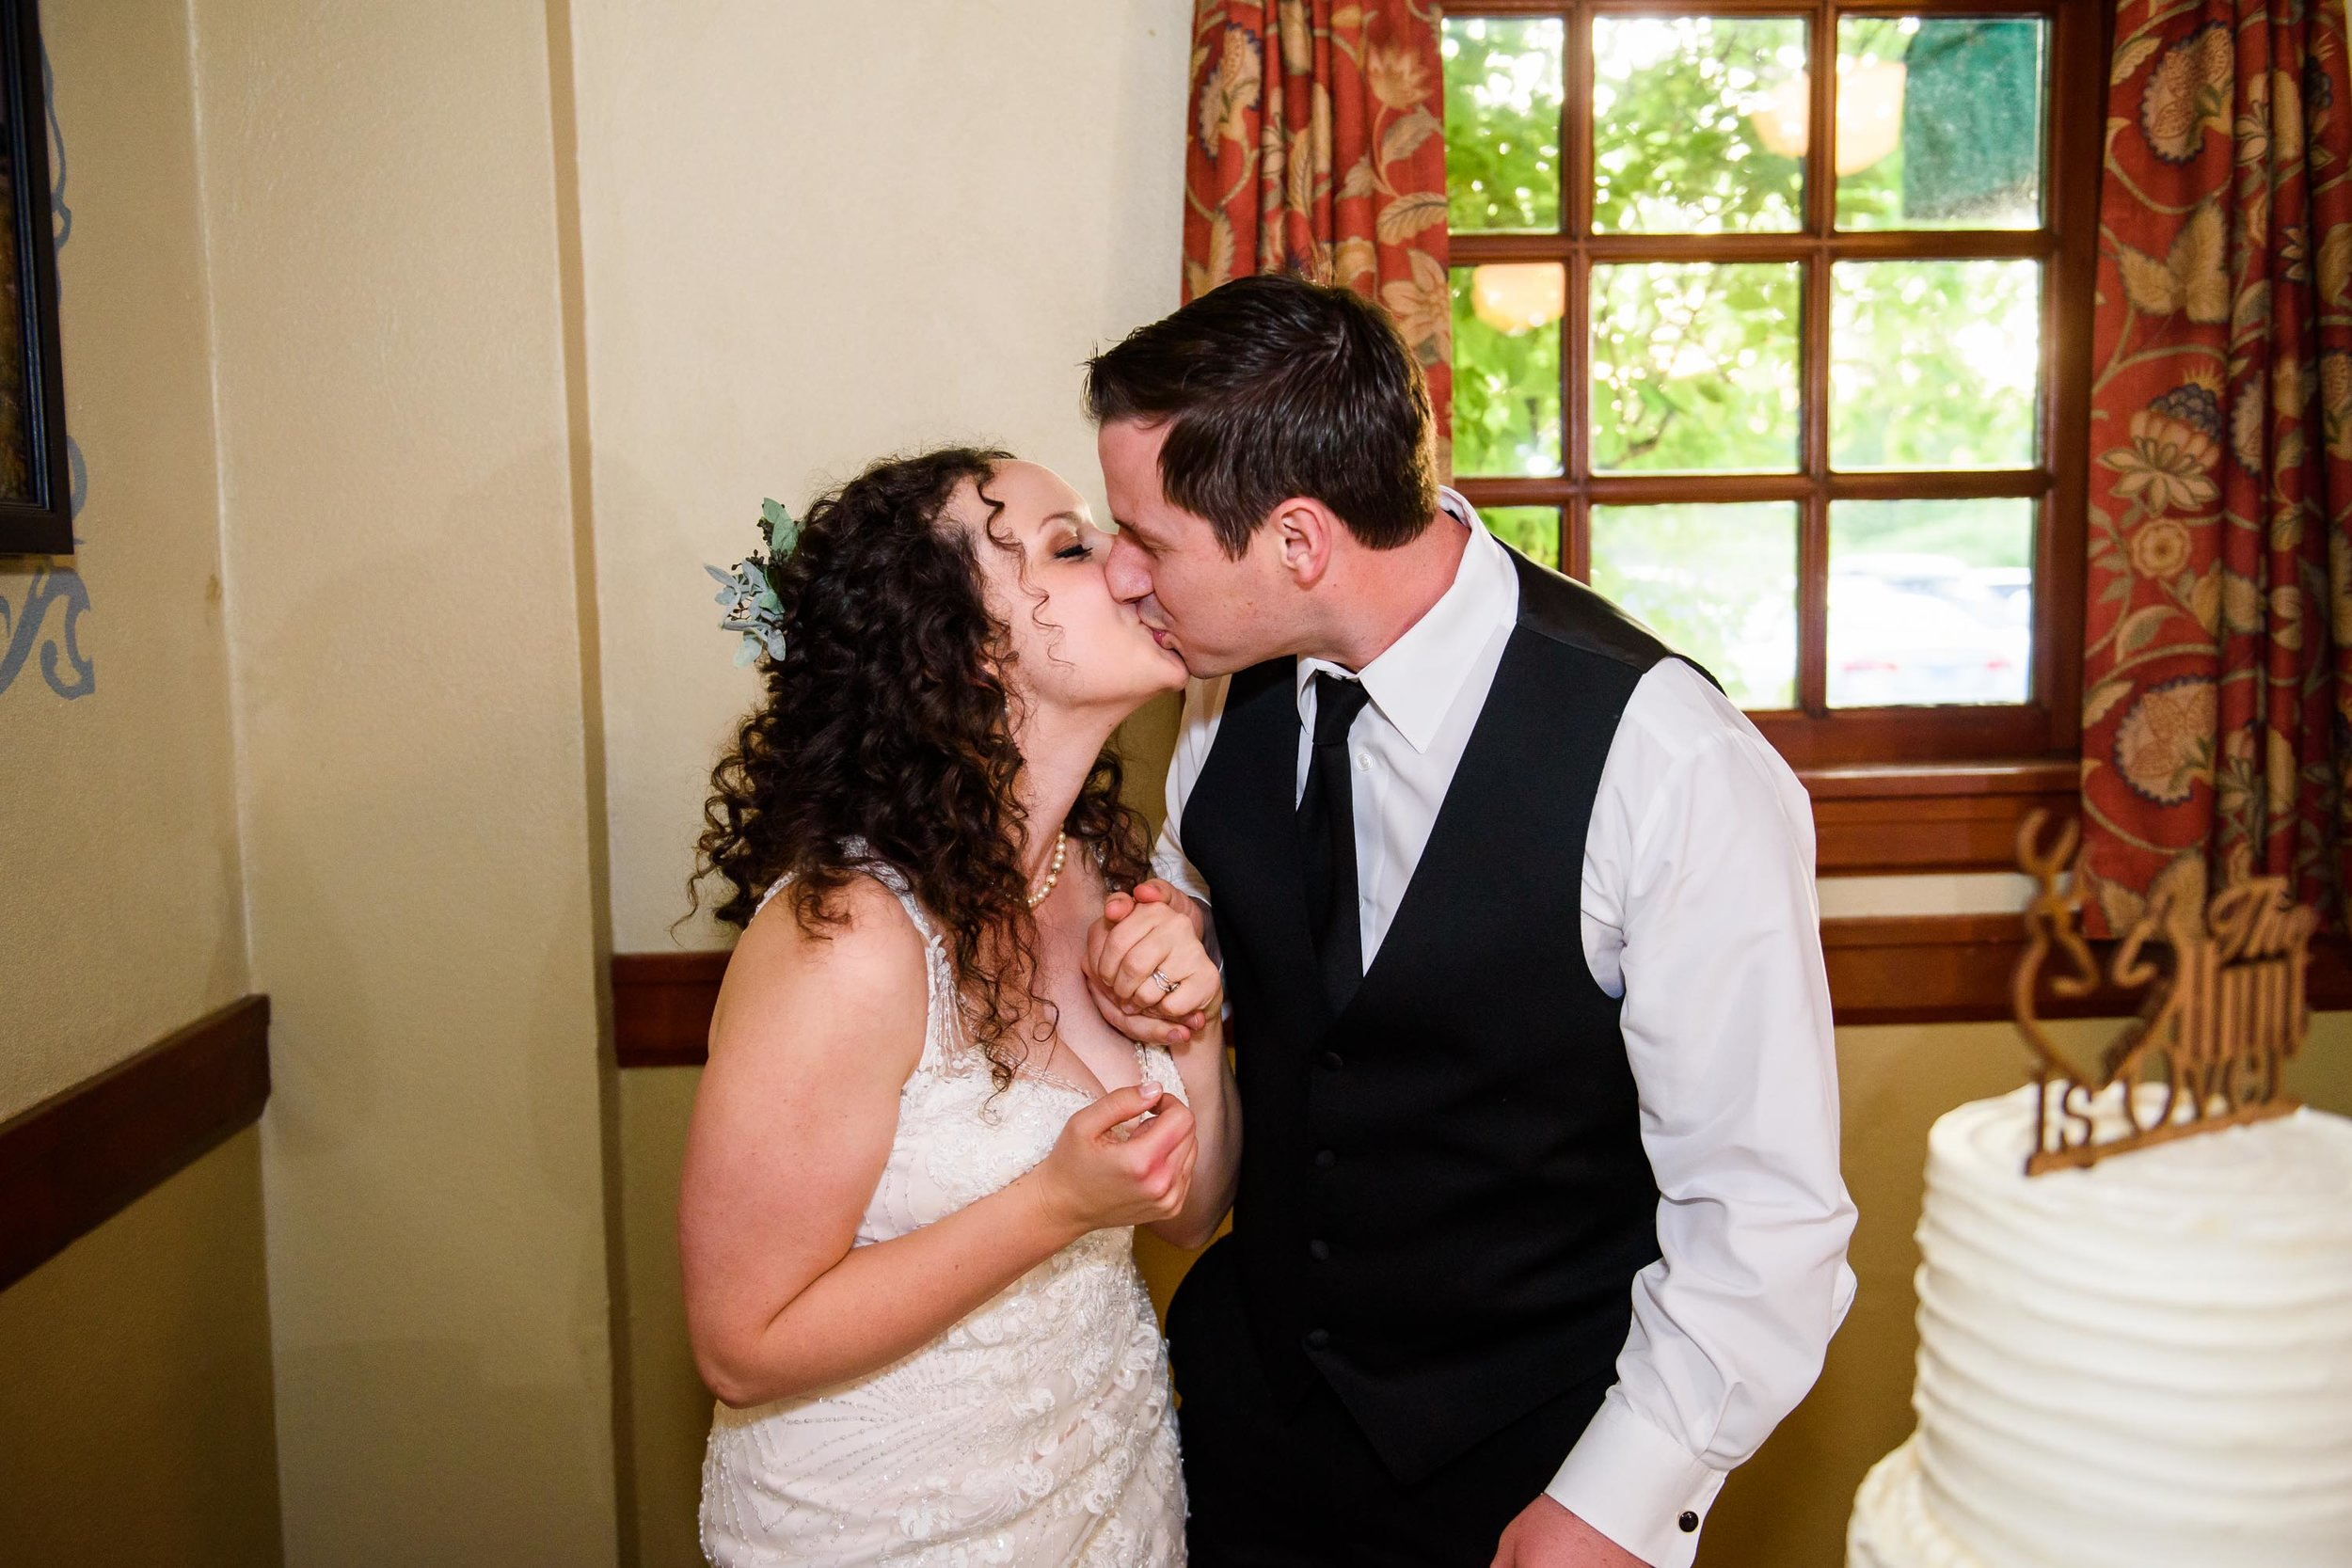 edgefield wedding photos78.jpg